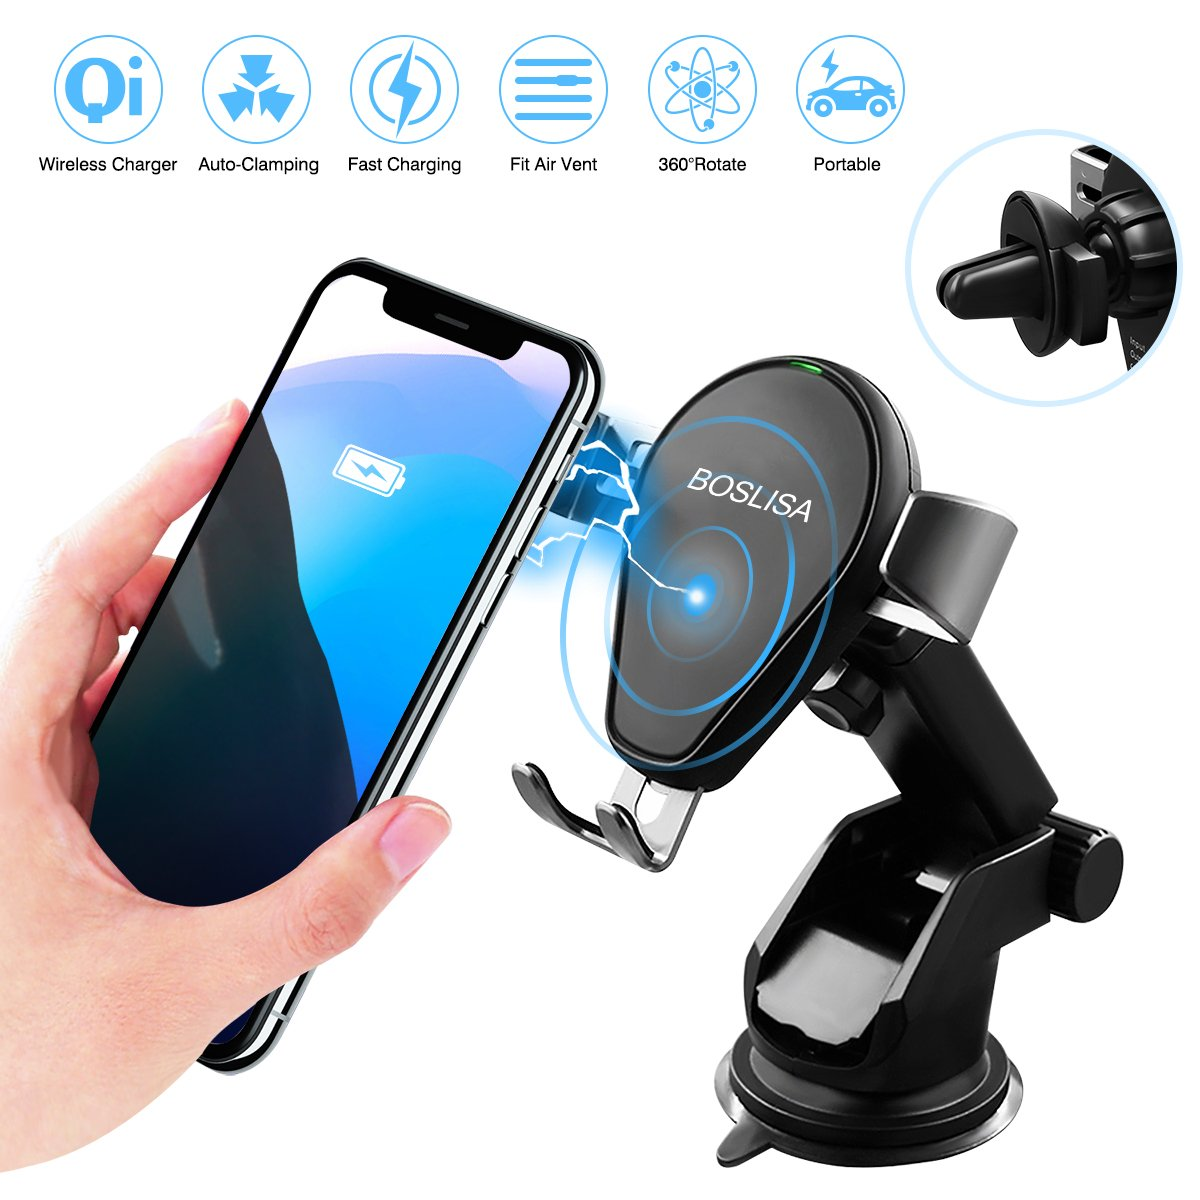 Galleon Wireless Car Charger Boslisa Qi Fast Charging Samsung Original S8 Plus Mount Phone Holder For Iphone X 8 Galaxy S7 Edge S6